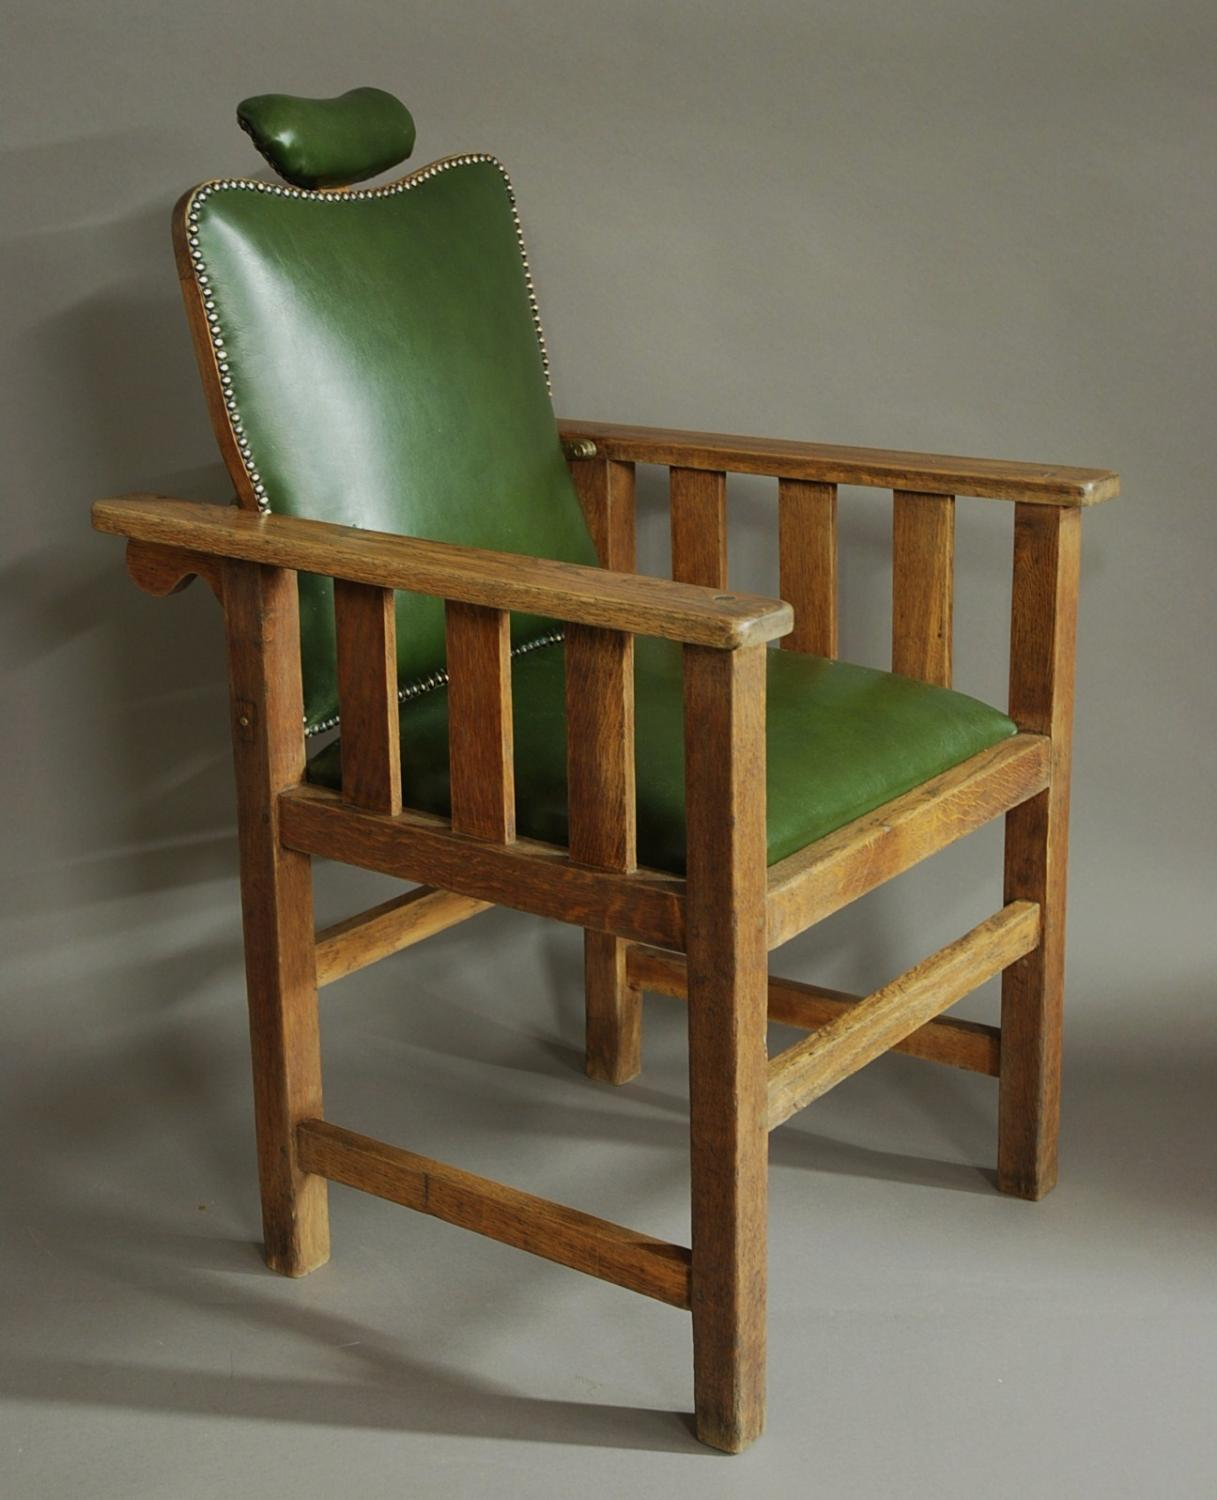 Early 20thc Arts & Crafts oak barber's chair